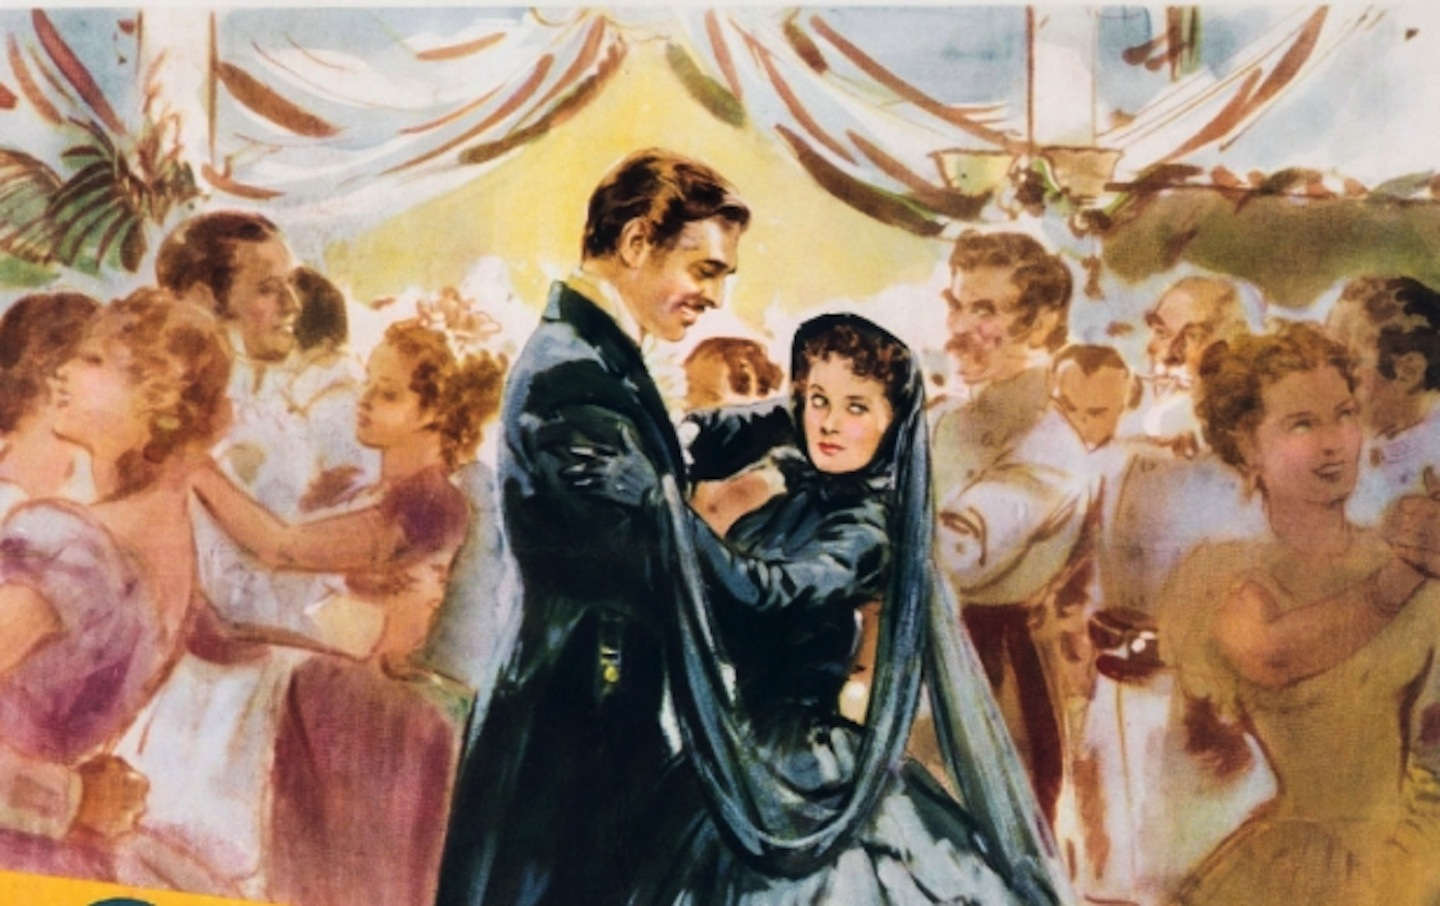 A promotional poster for the film version of Gone With the Wind